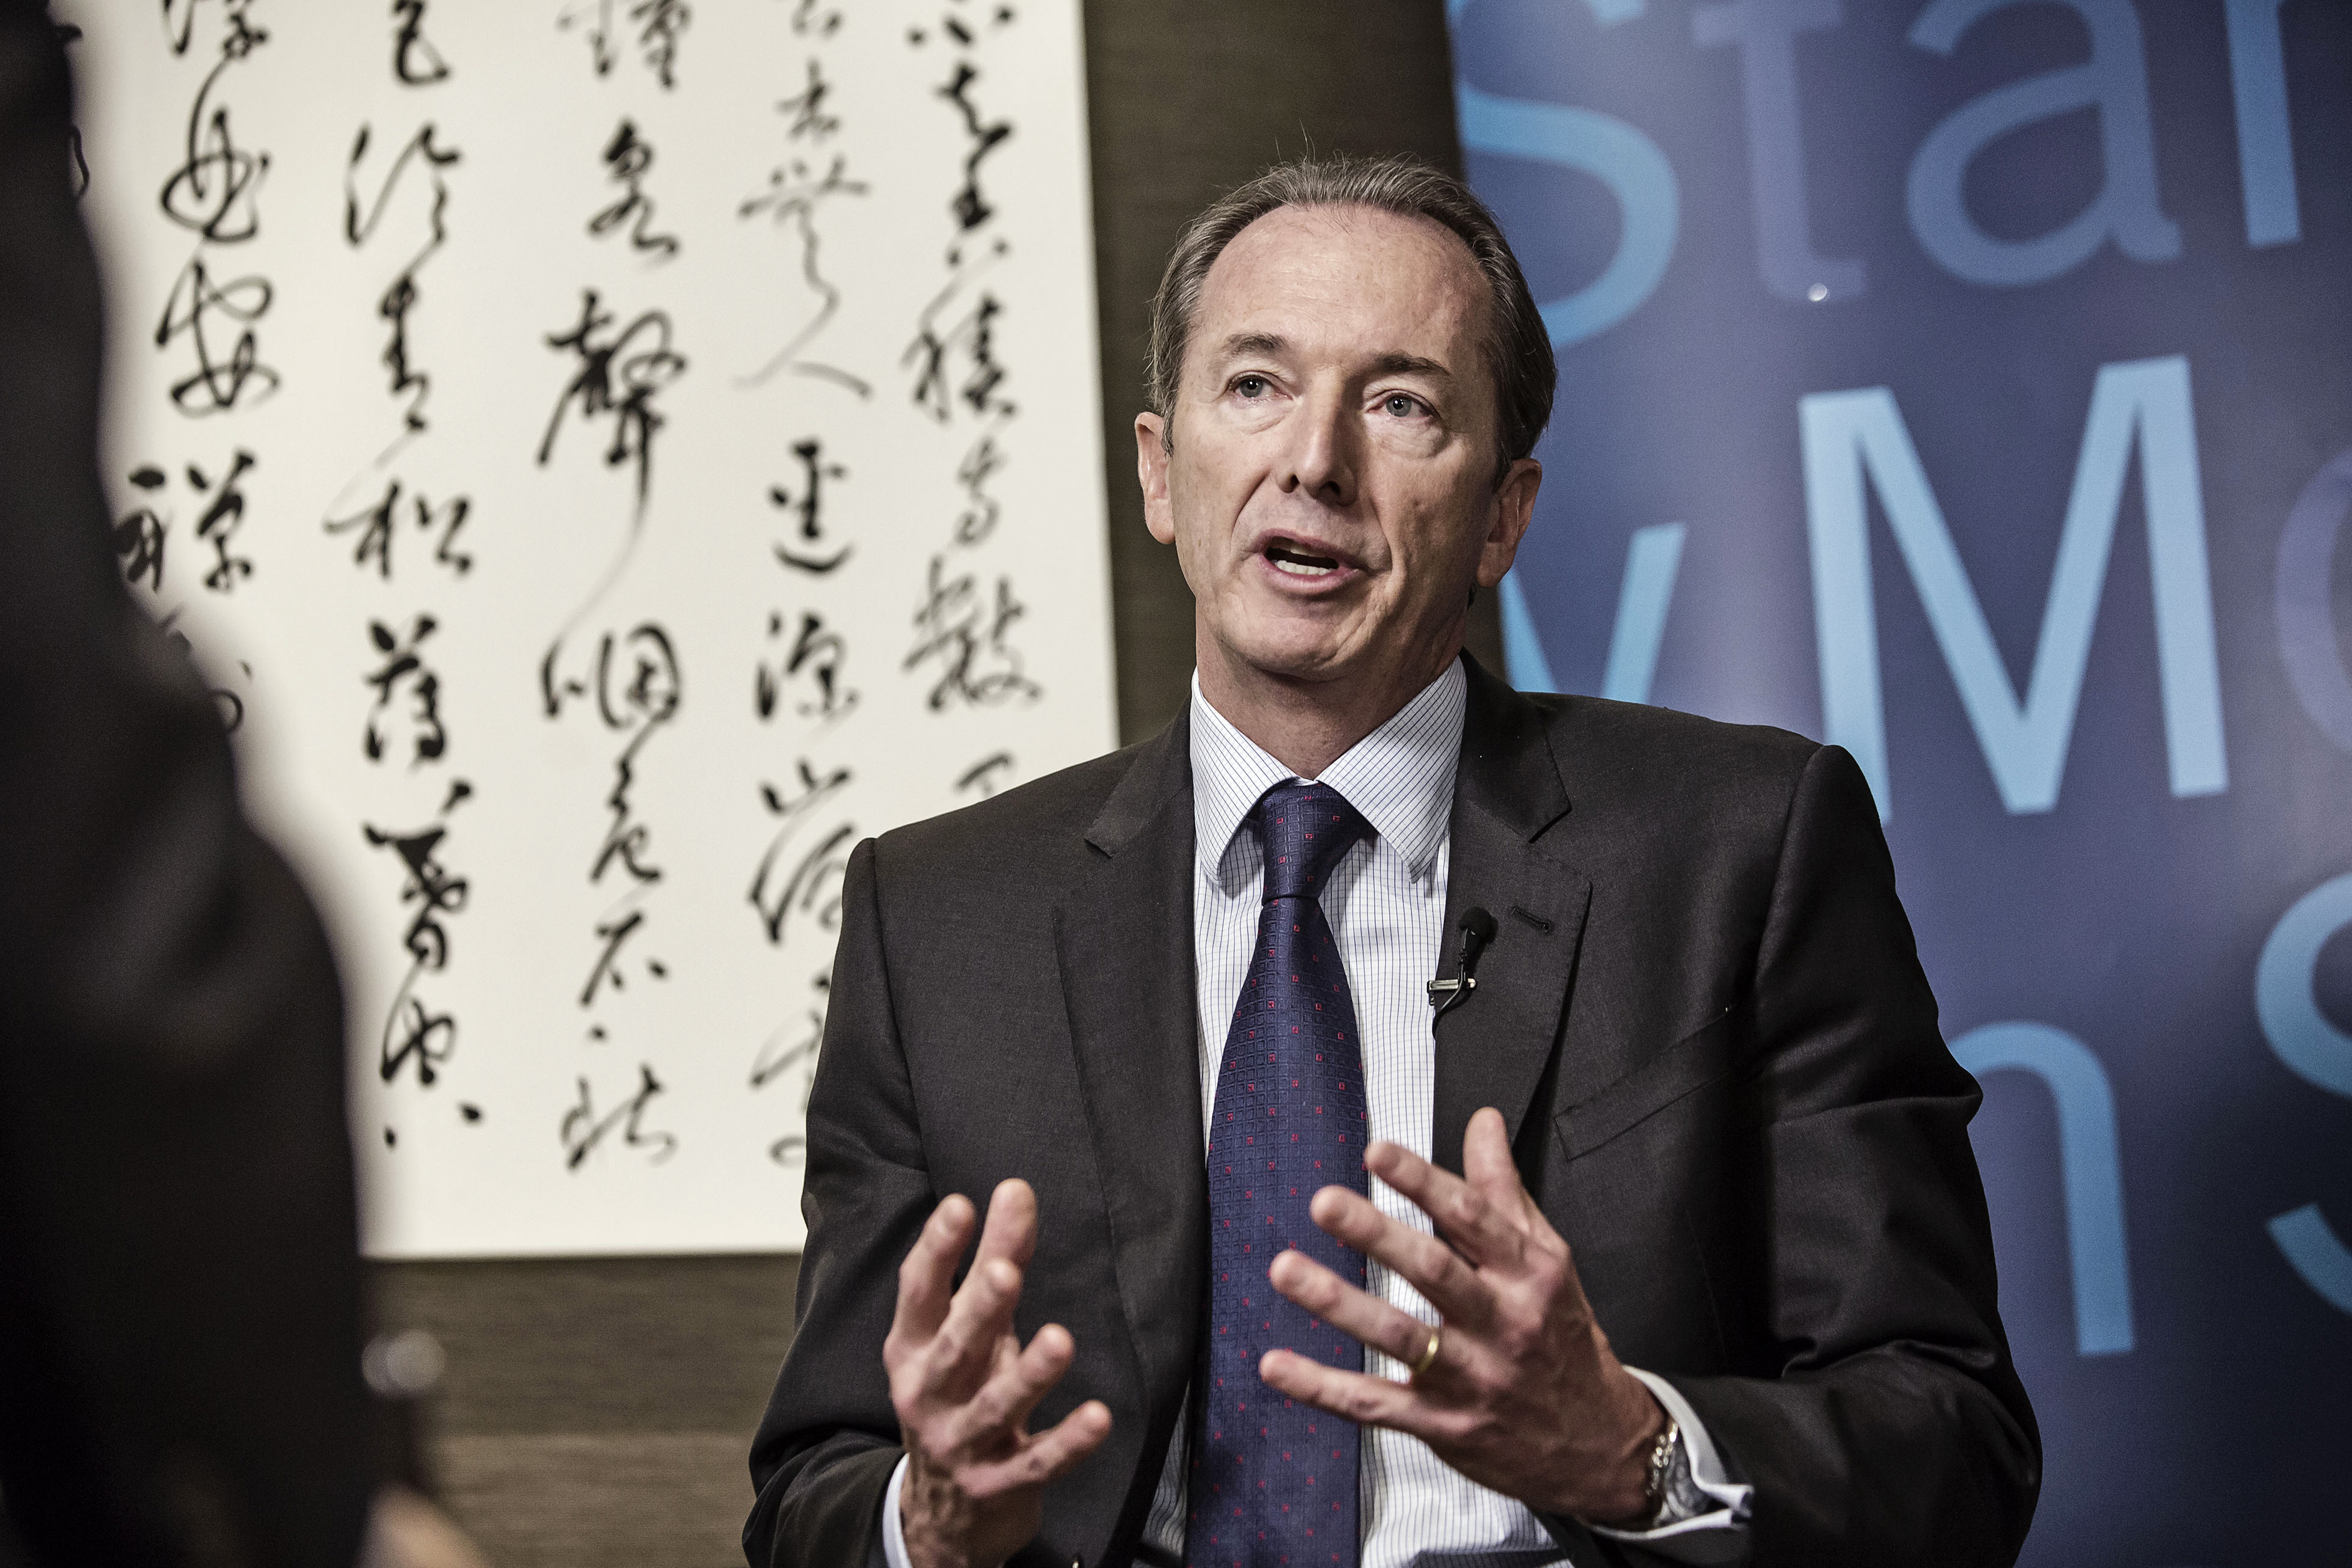 Morgan Stanley CEO James Gorman Interview at the Morgan Stanley China Summit